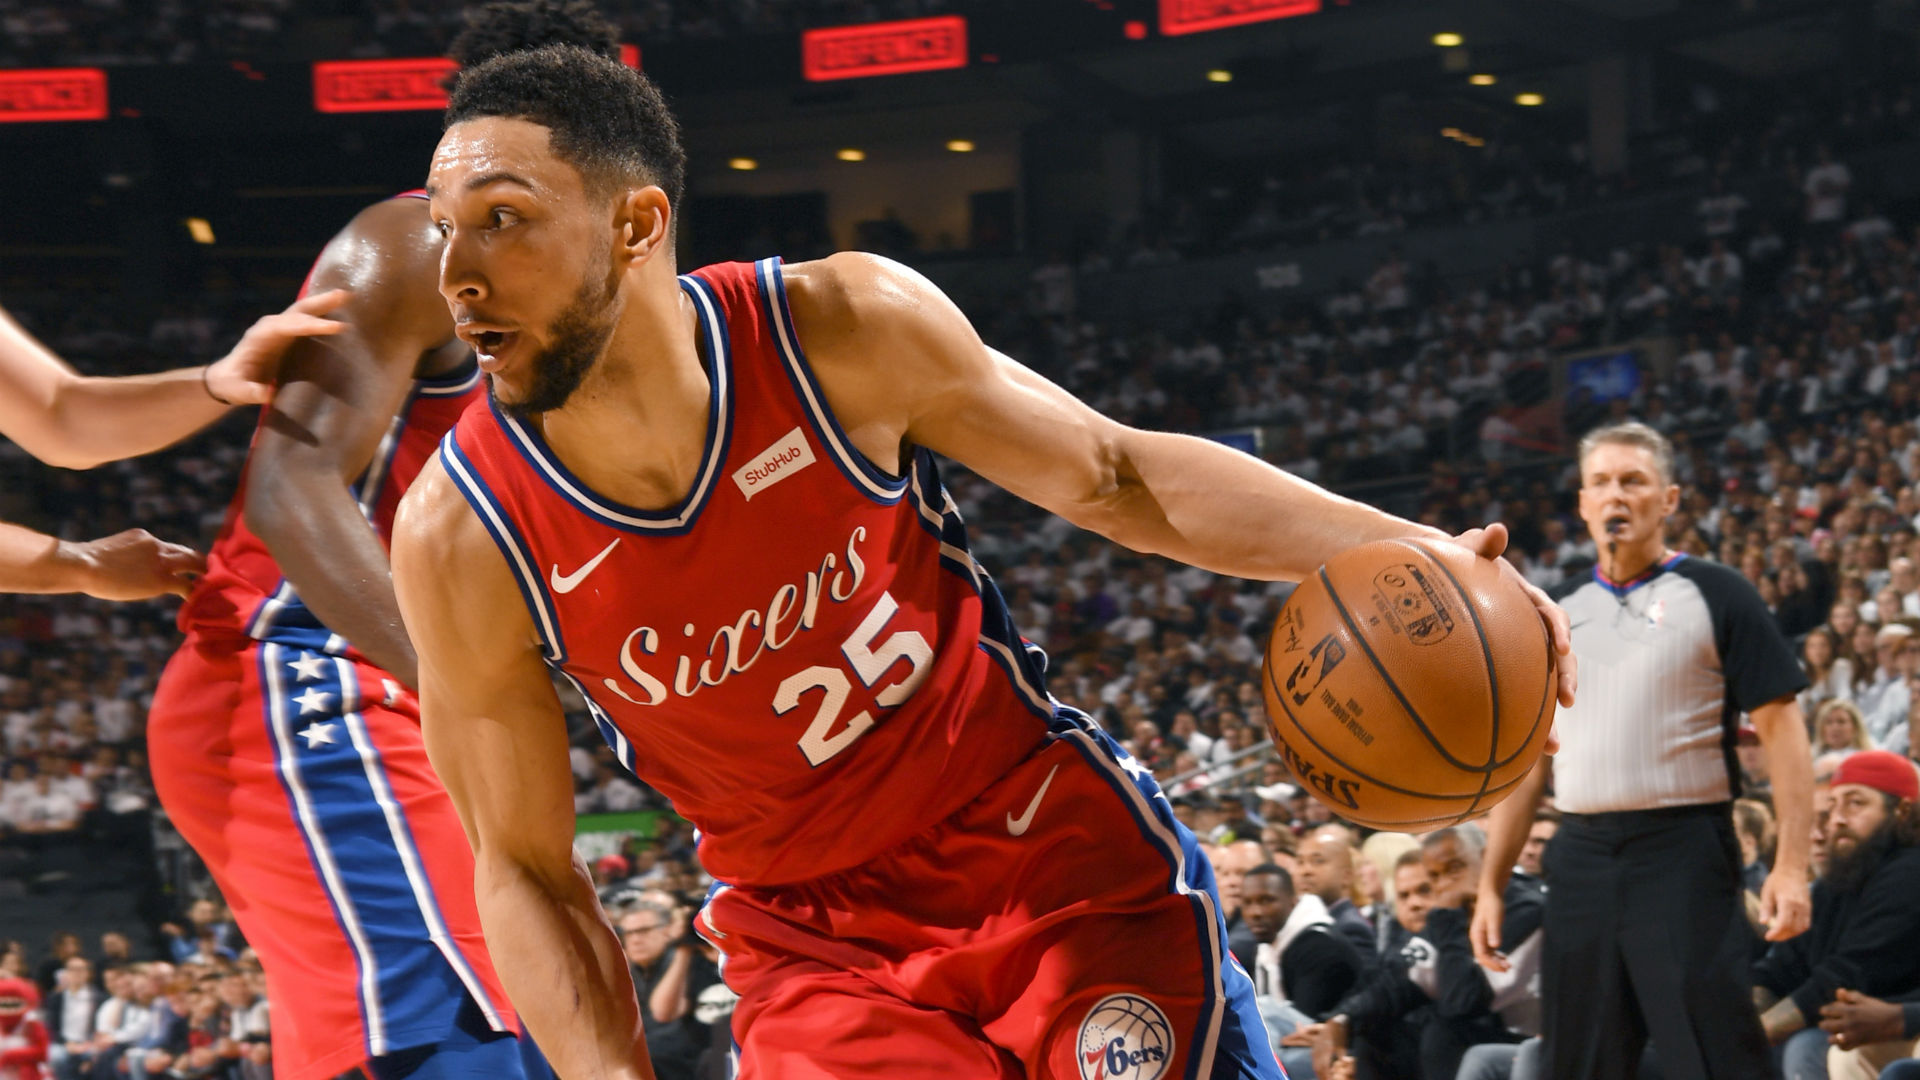 Report: Ben Simmons, Philadelphia 76ers agree on five-year, $170 million extension